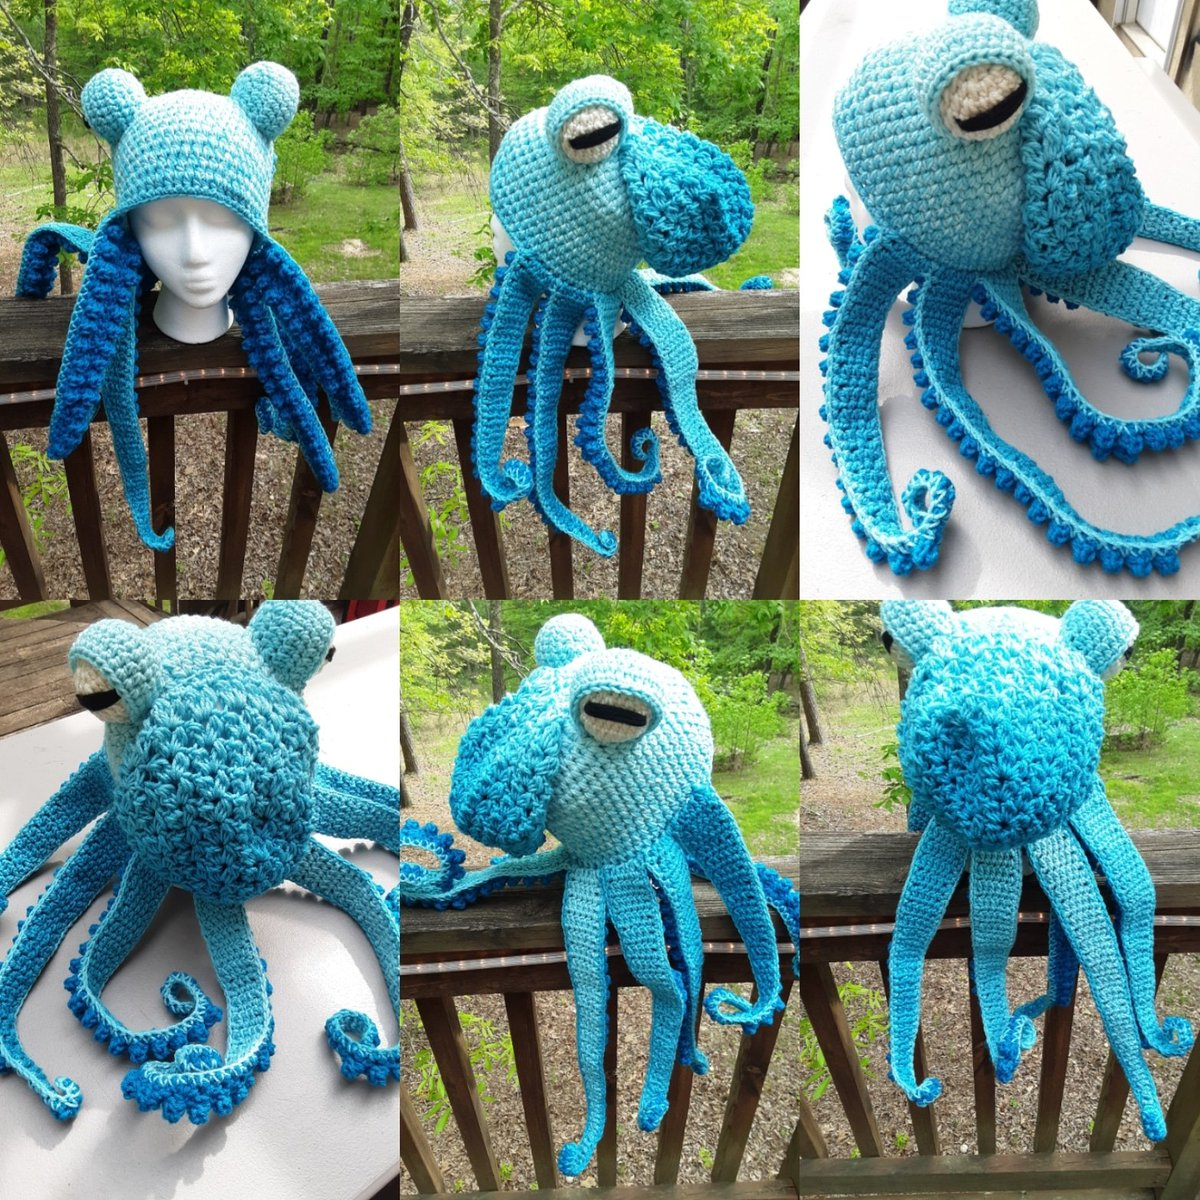 87 Best fsm images in 2020 | Flying spaghetti monster, Noodly ... | 1200x1200